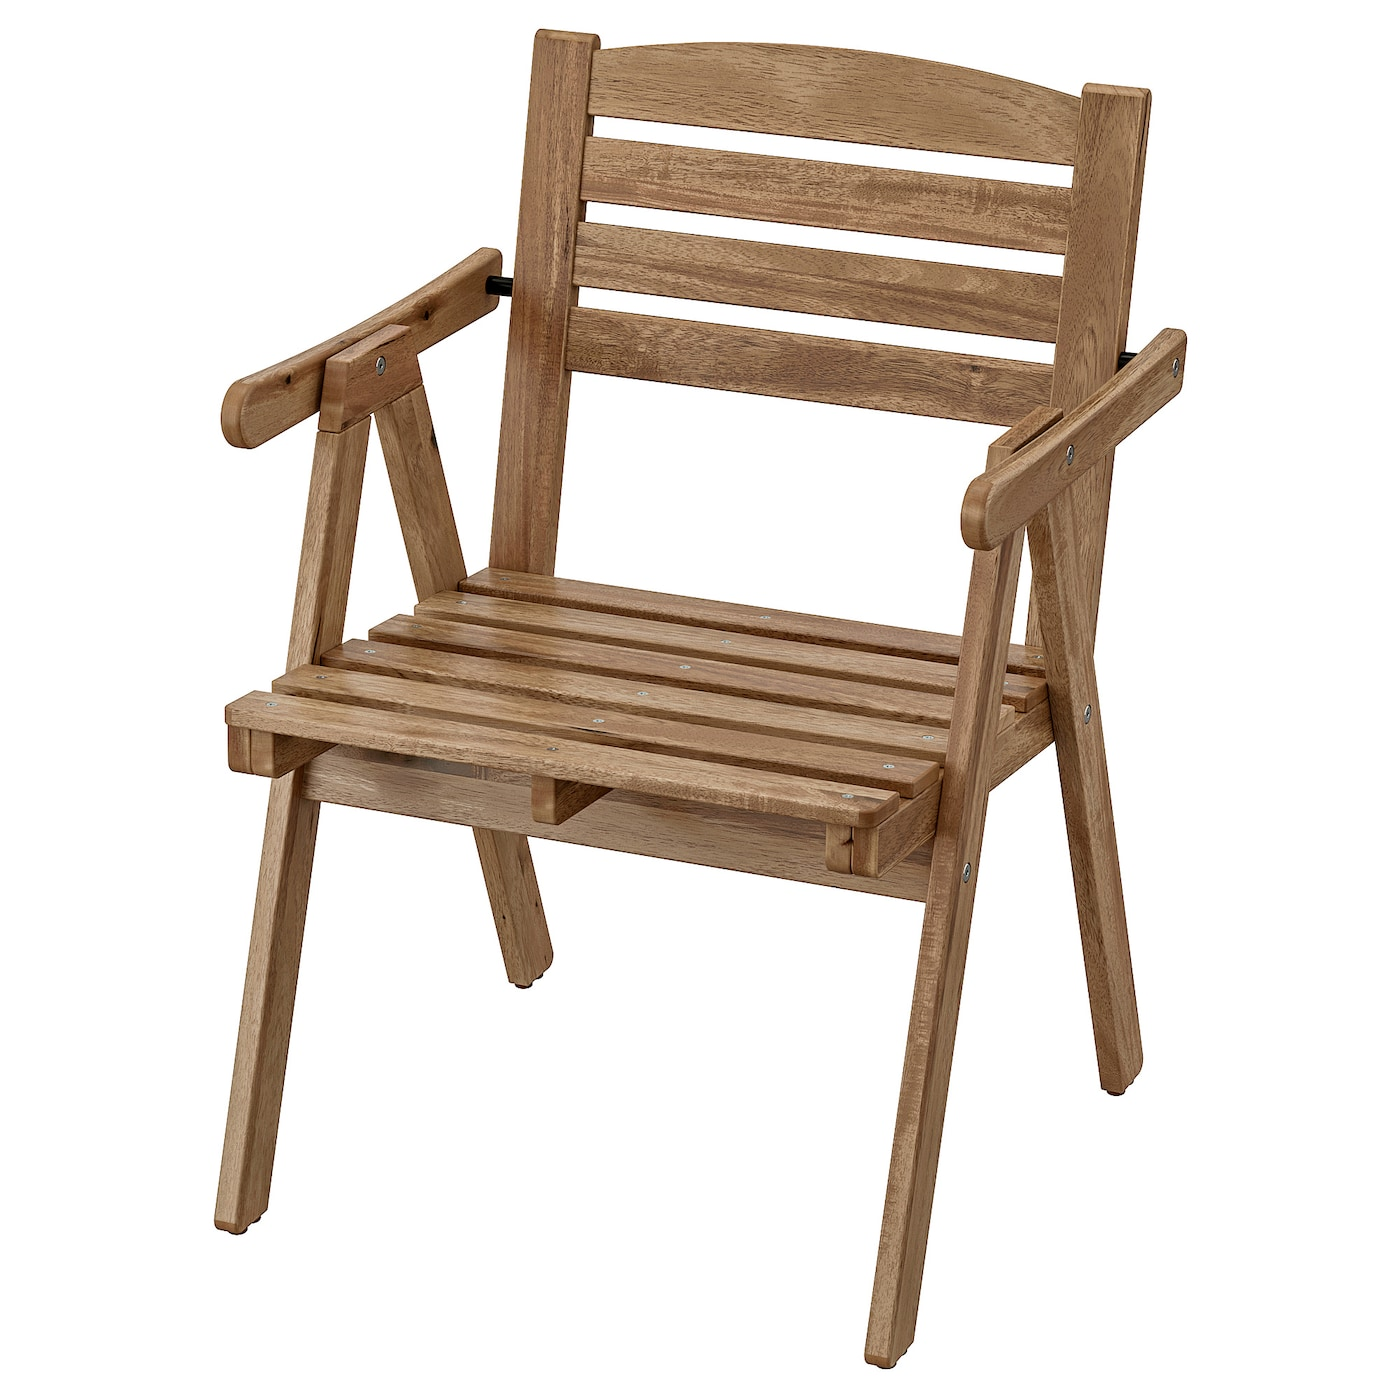 FALHOLMEN Chair with armrests, outdoor - light brown stained